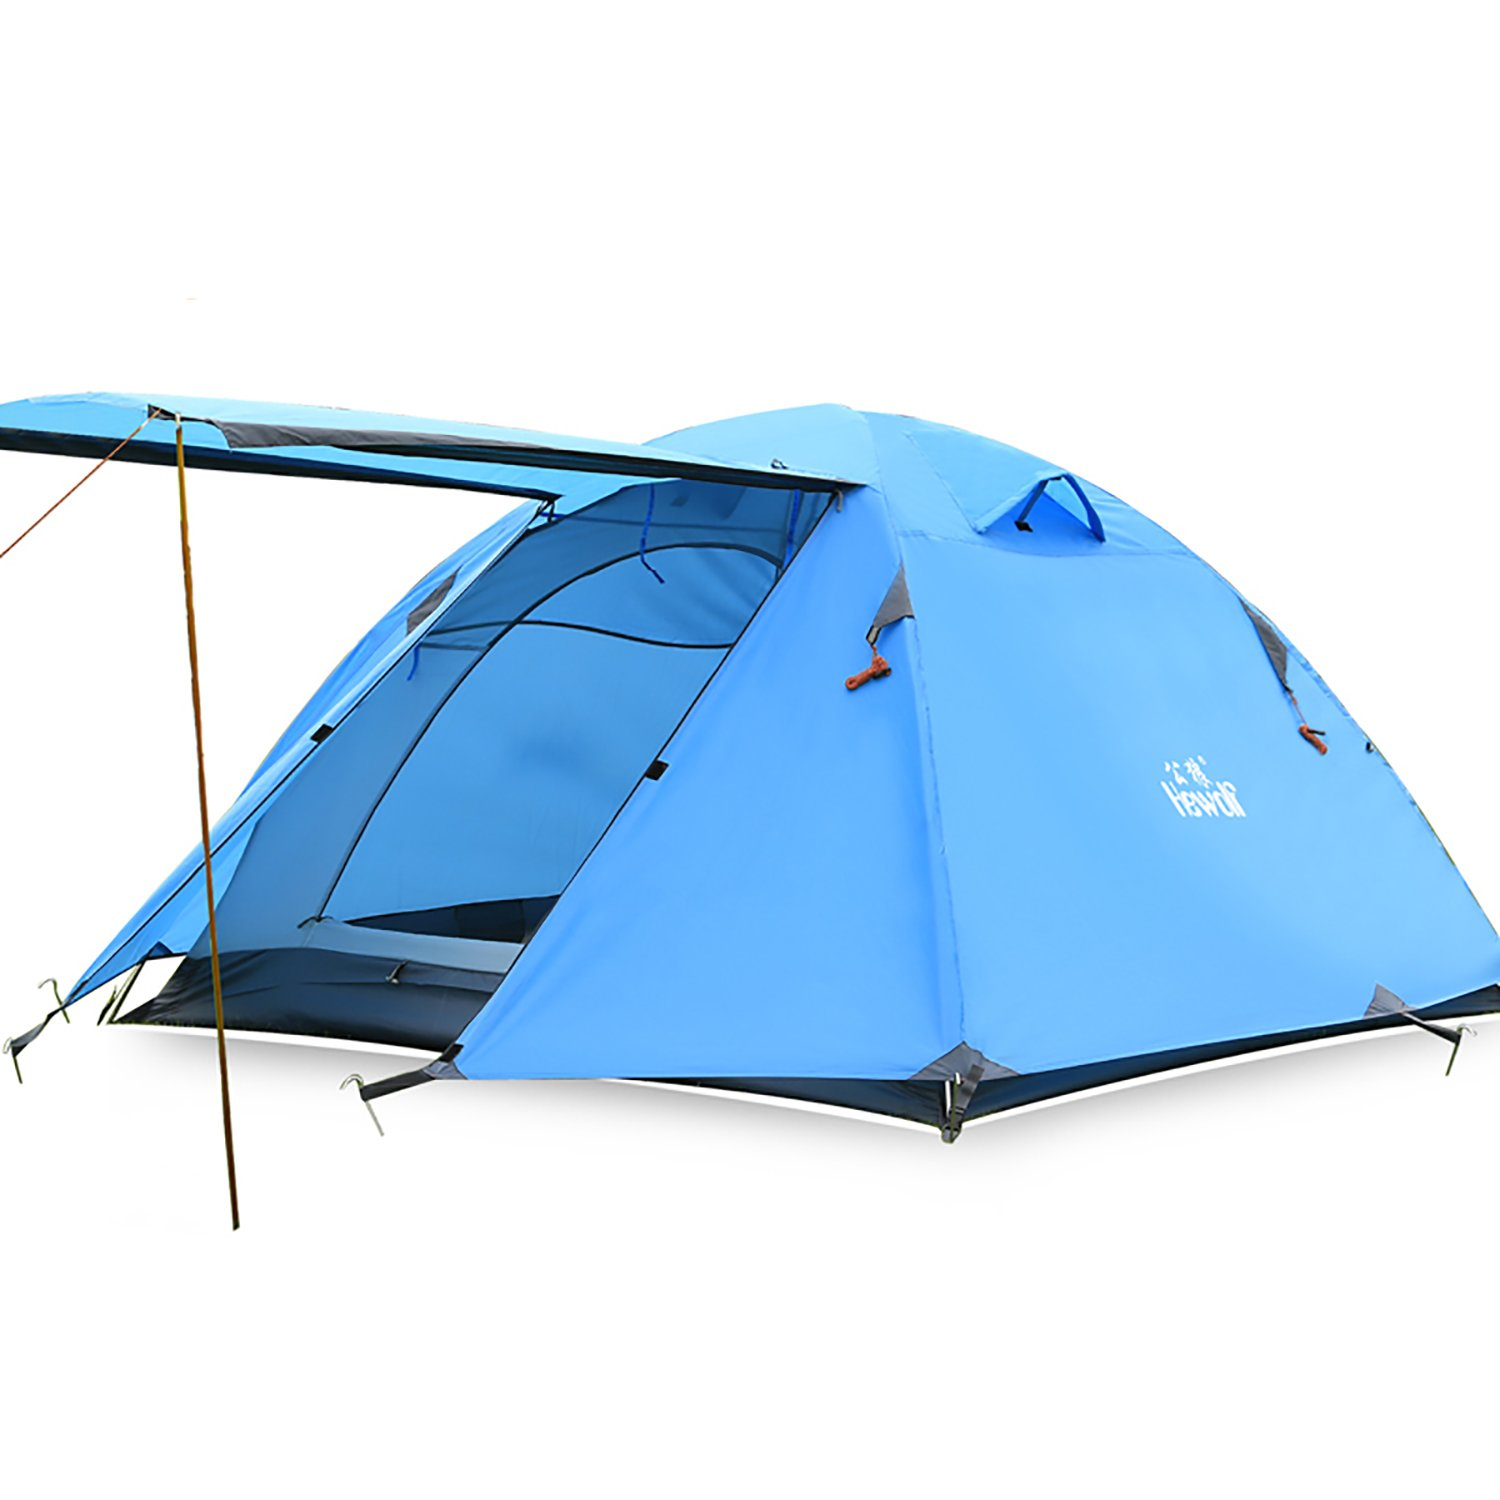 Hewolf 軽量防水バックパッキングテント アルミポール 4シーズンハイキングテント 超軽量クライミングテント  3 person tent 6.5ft*5.9ft*3.9ft B00UN1D1UC